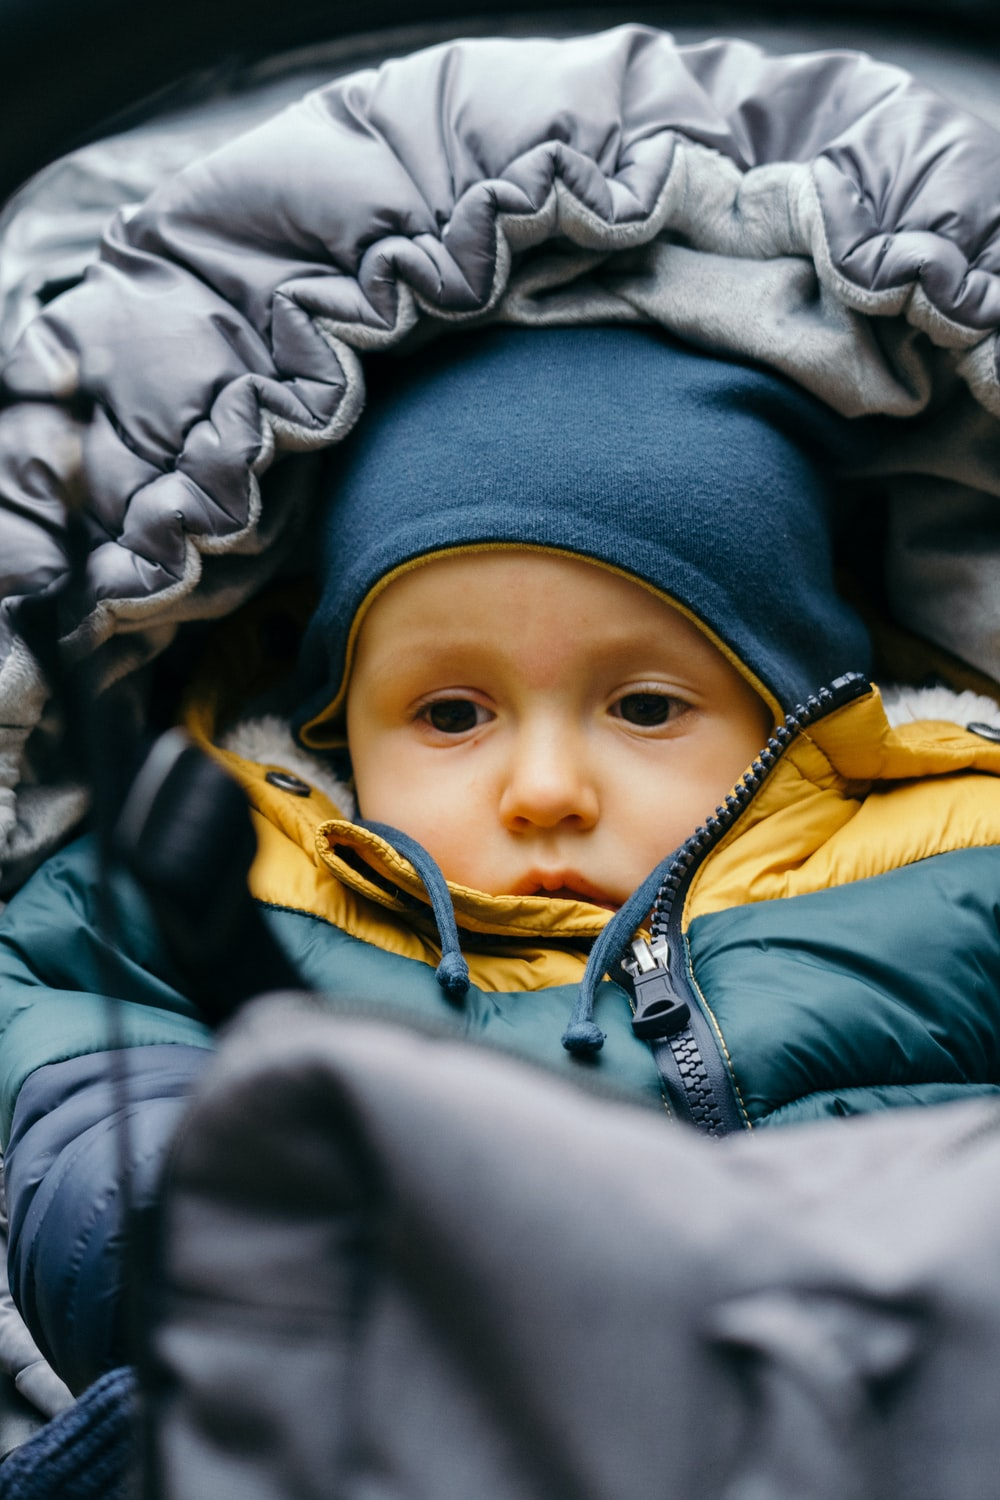 baby in blue and yellow jacket